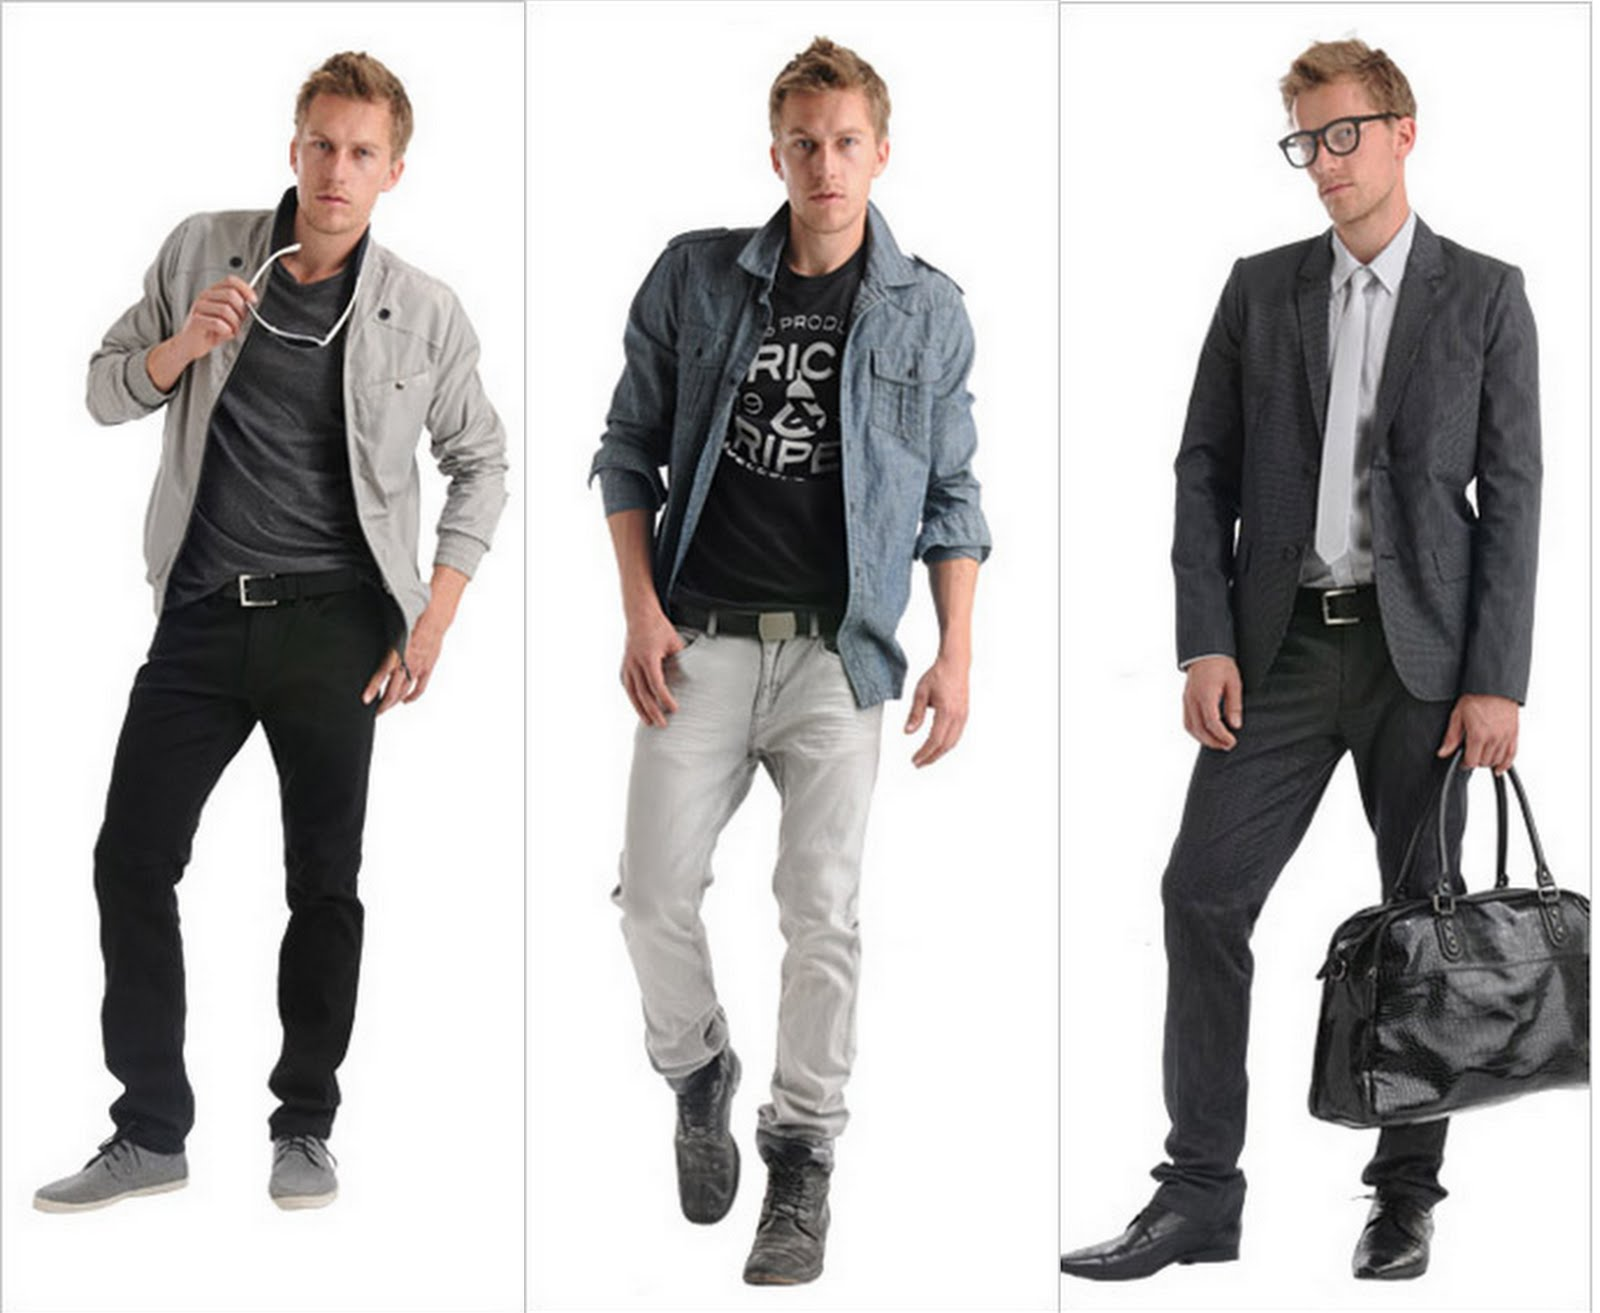 Guylook presents the new cool, sexy and masculine men's apparel with the lowest price ever. Be the first one who discovers a wide selection of men's discount leather jackets,peacoats,jeans,shirts,tees,accessories and a lot more. We bring customers the latest men's fashion trends for an ultimate cool guy look.